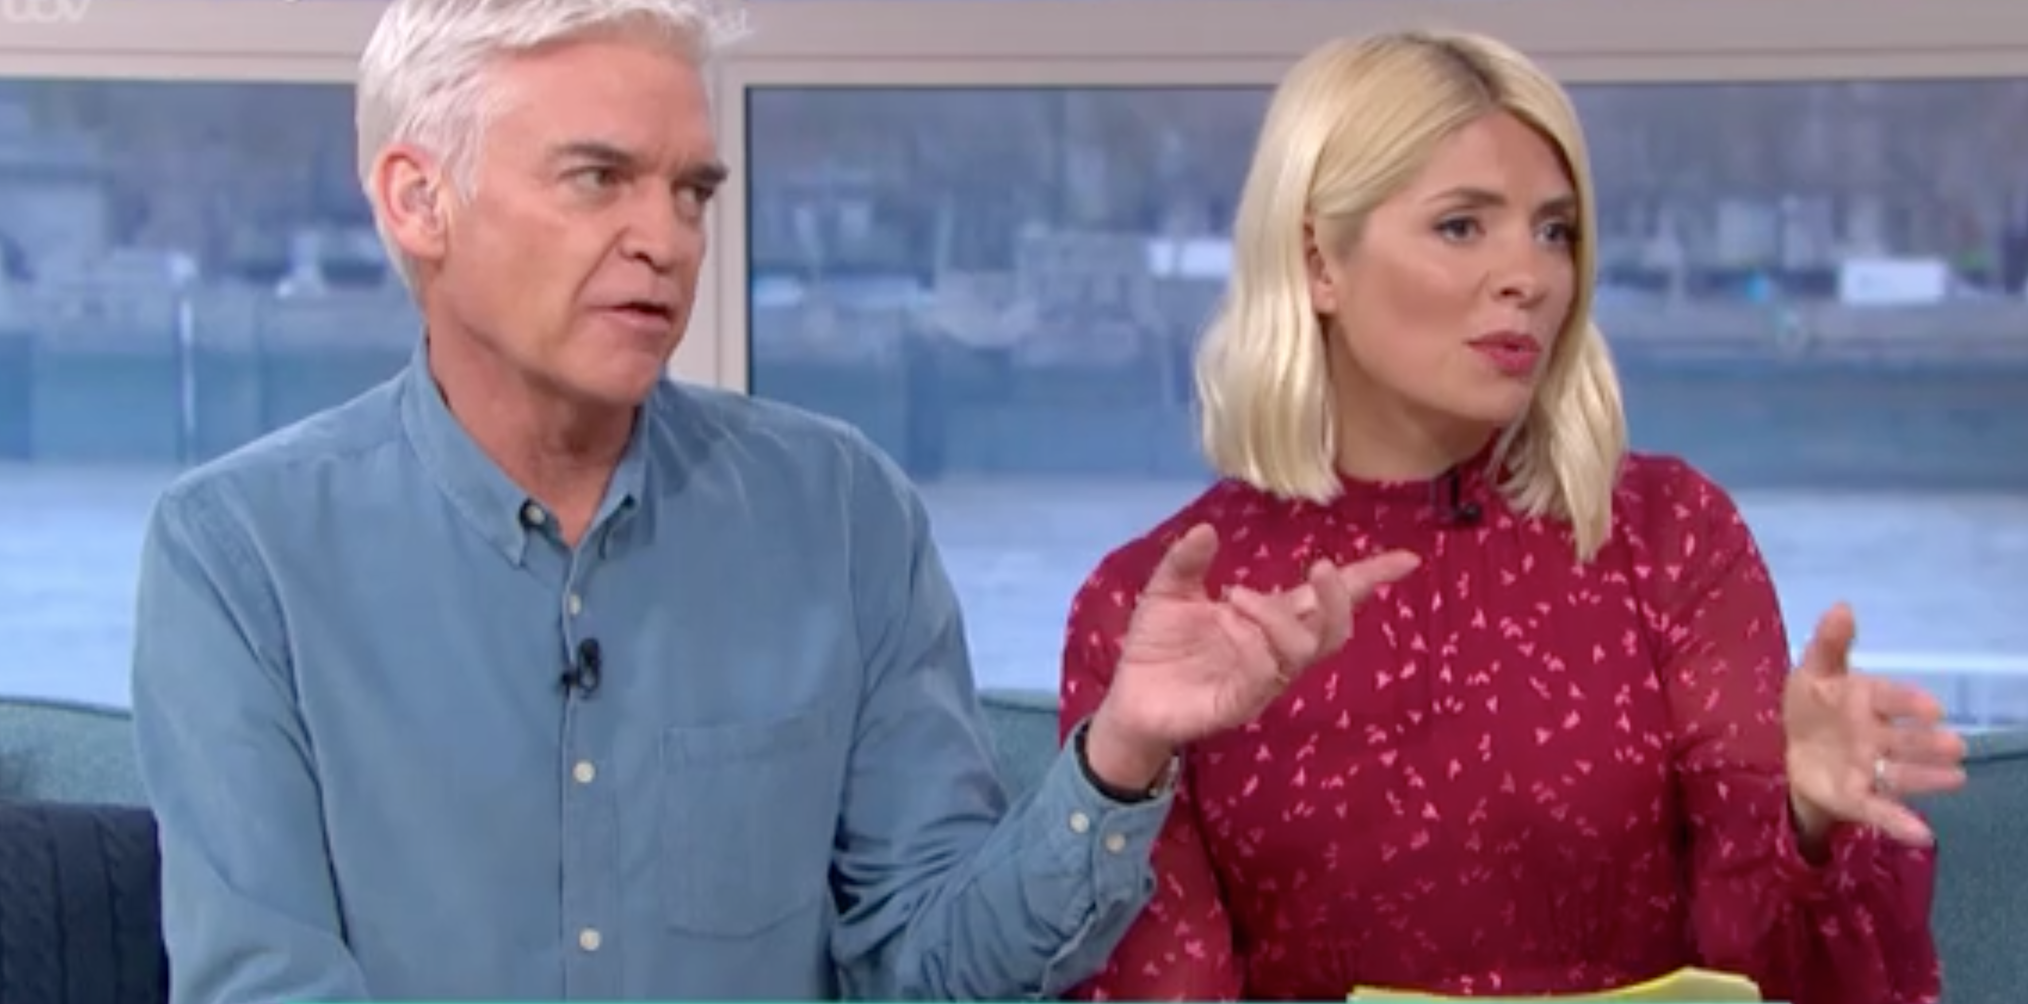 Phillip Schofield and Holly Willoughby step in to calm Meghan debate on This Morning